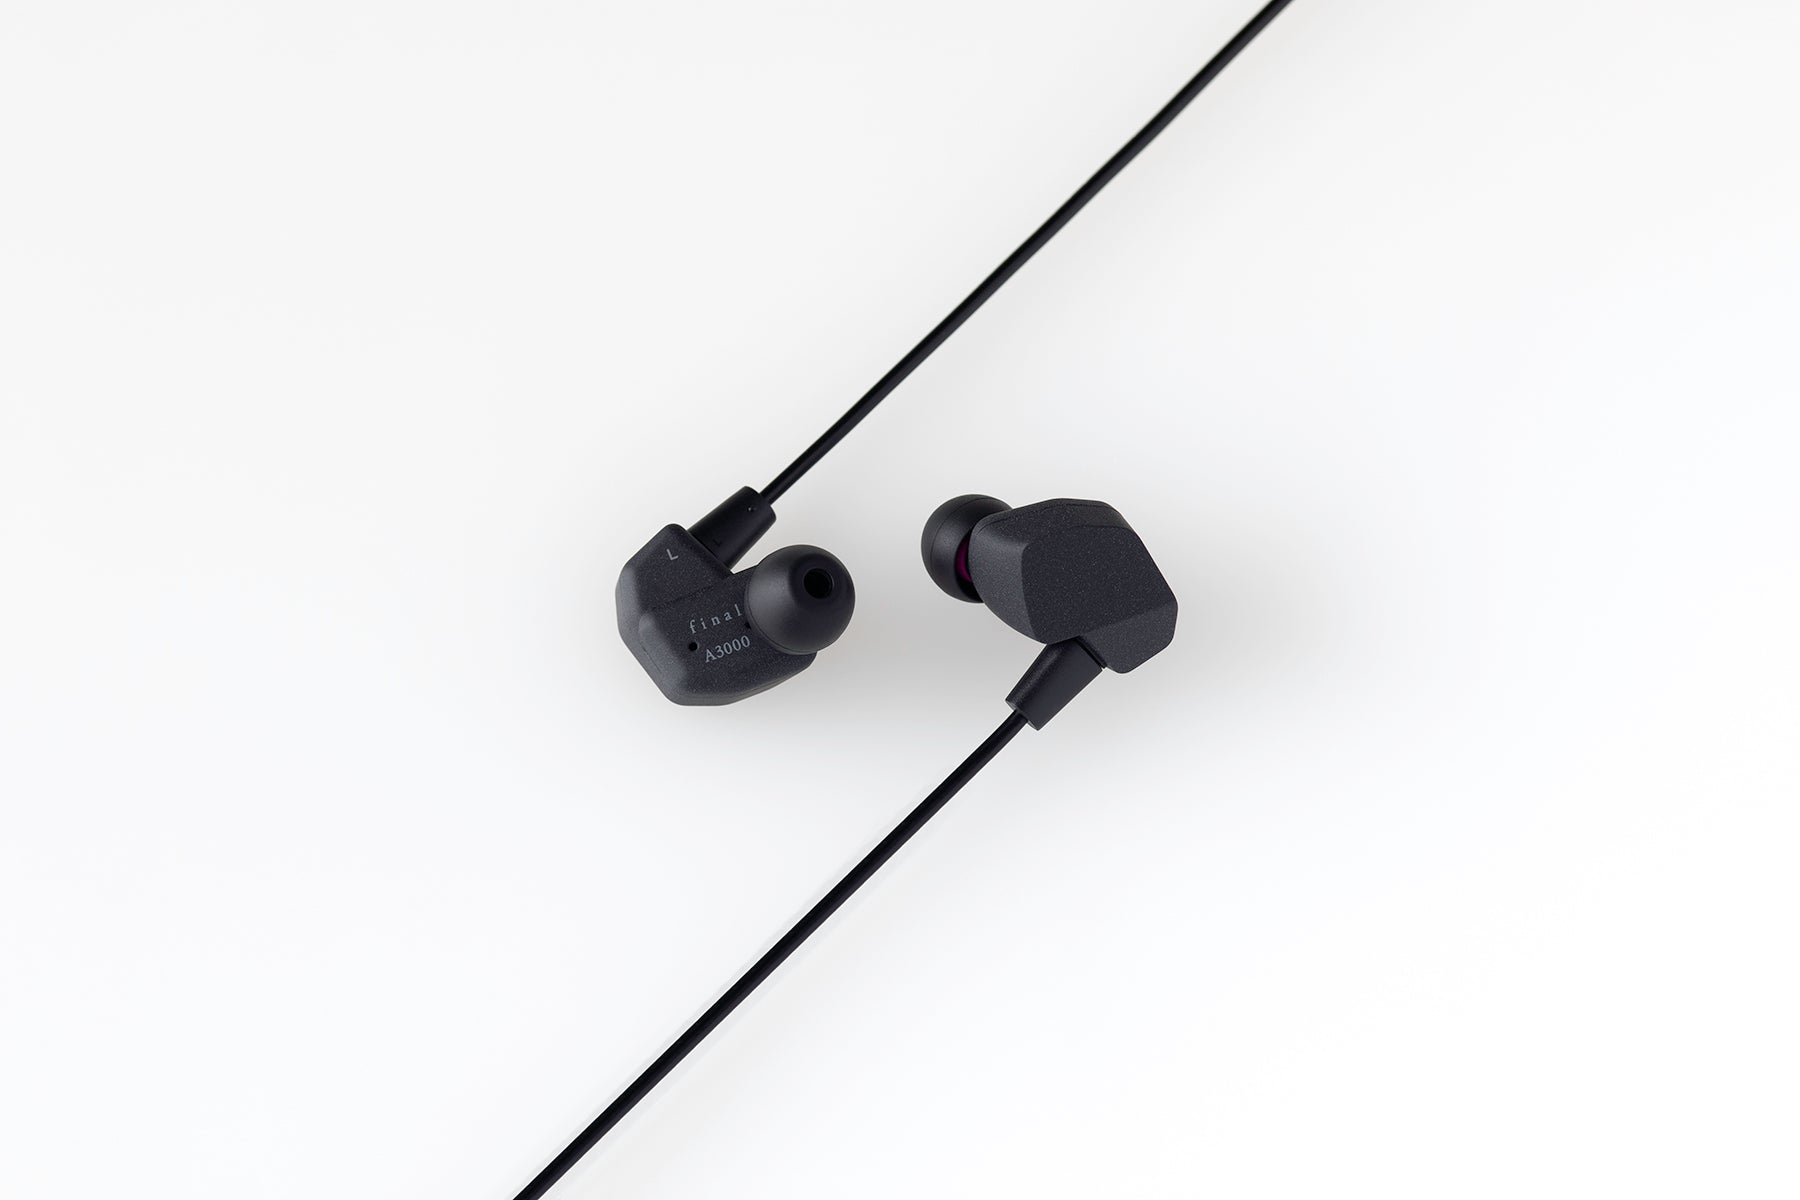 [Jaben Combo] Final A3000 In-Ear & Hidizs S1 Type-C to 3.5mm USB DAC Cable